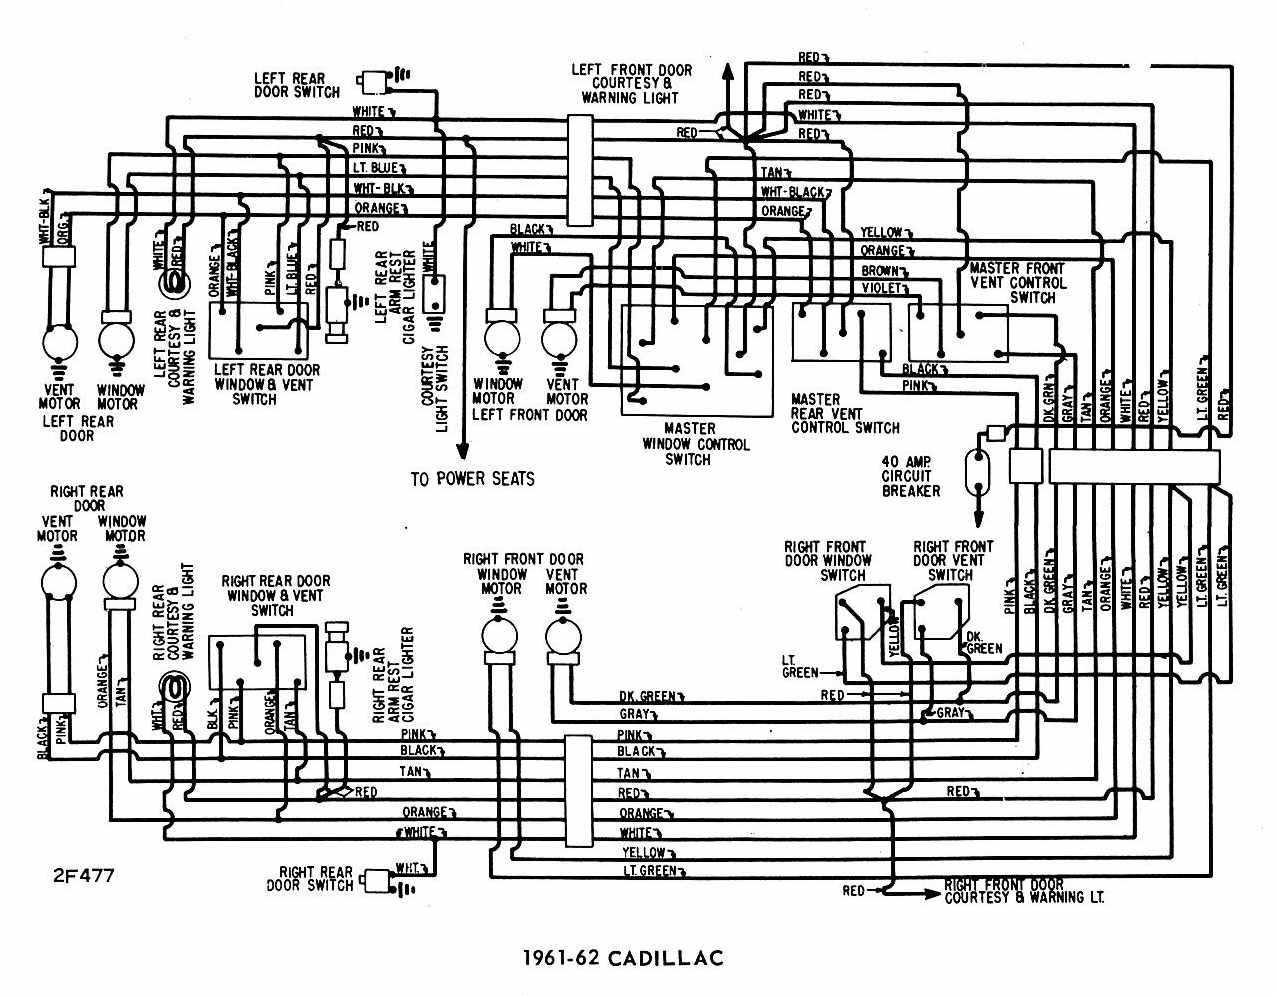 wiring diagram for 1999 cadillac escalade wiring diagram rh blaknwyt co Wiring Harness 2003 Cadillac CTS 2001 cadillac deville alarm wiring diagram